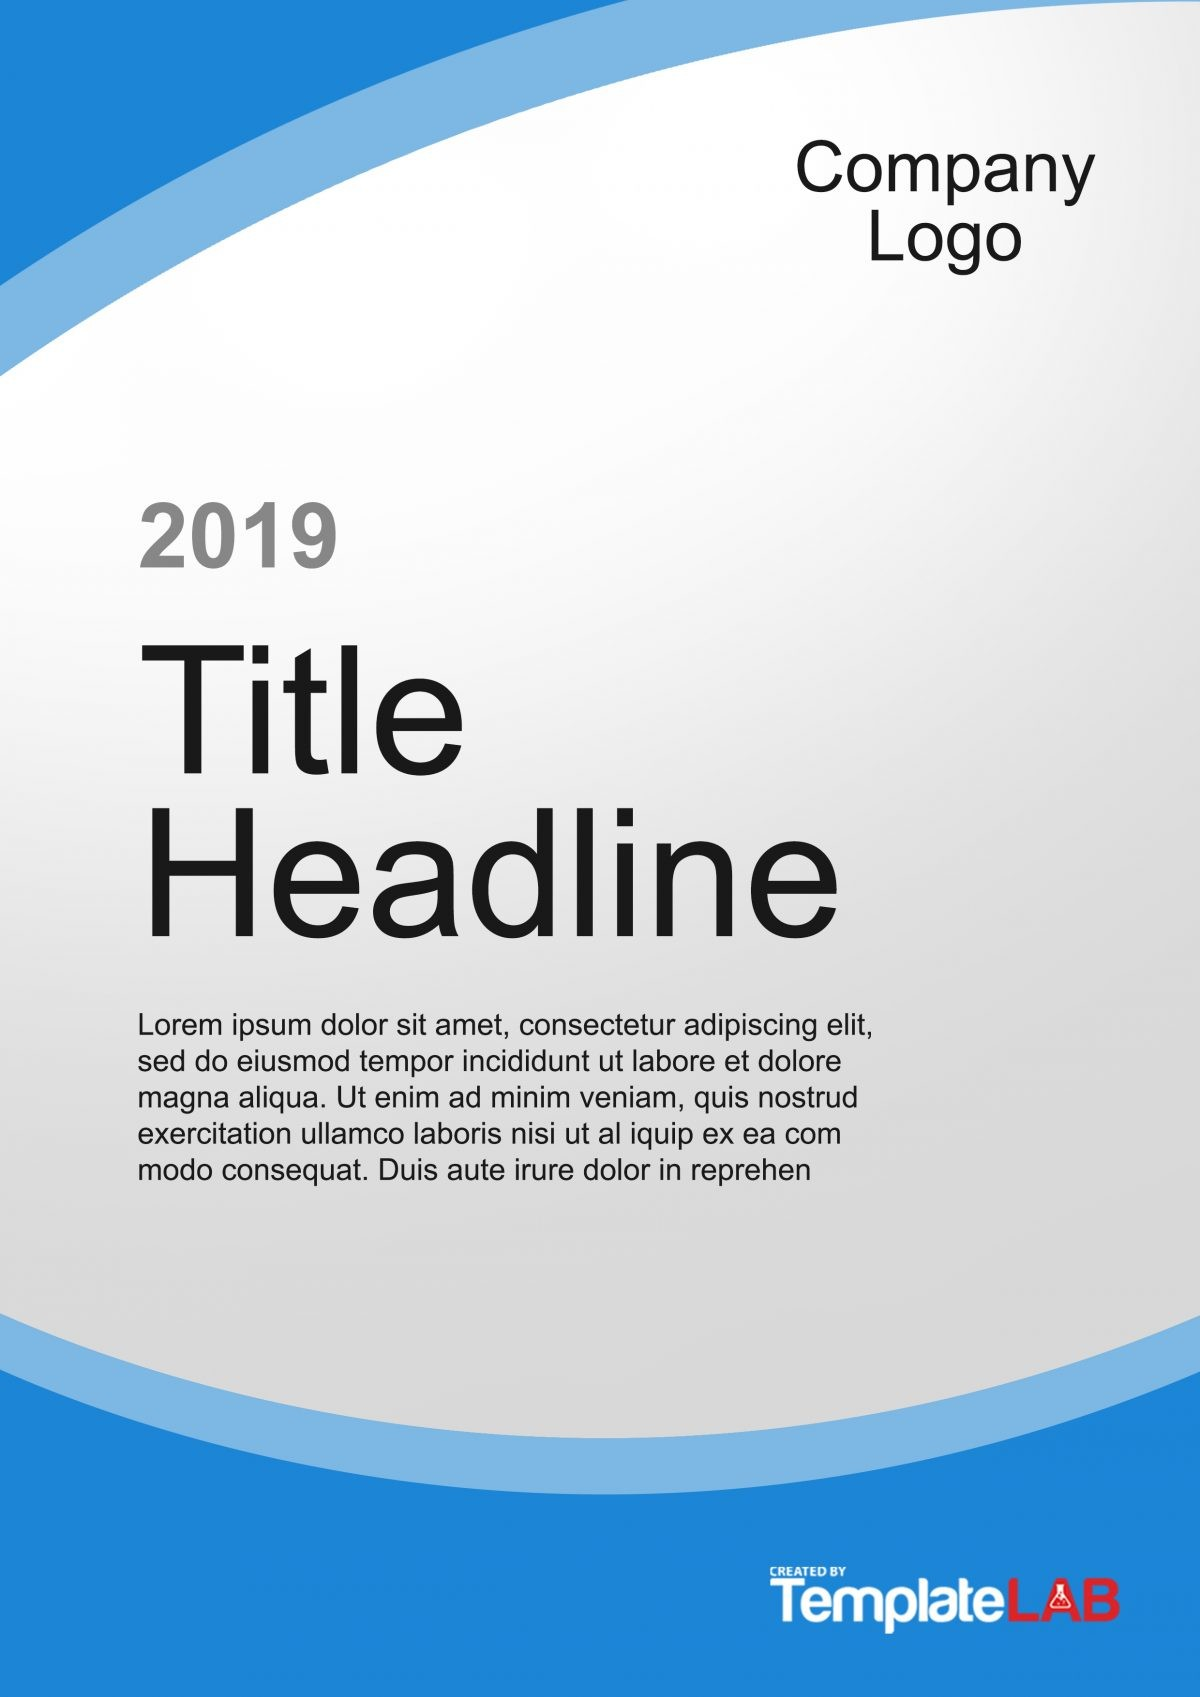 Free Cover Page Template 6 - TemplateLab